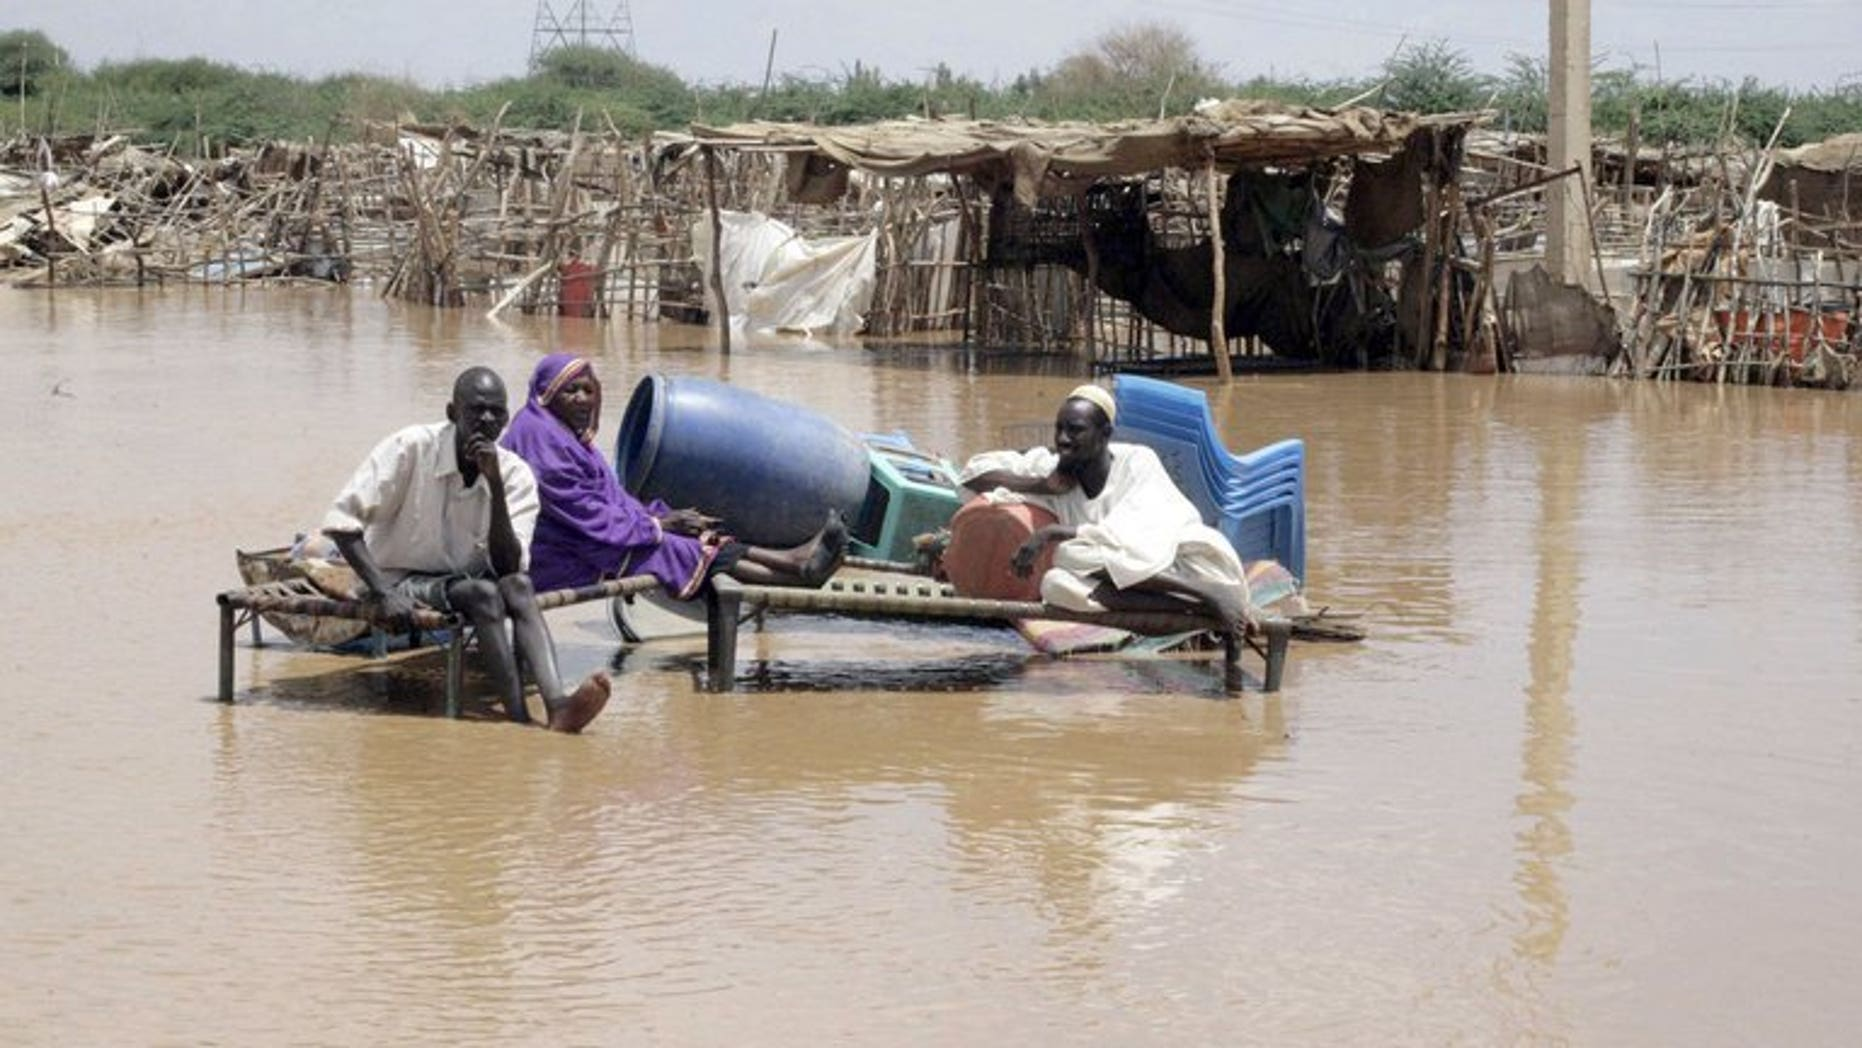 Men sit with their belongings on a flooded Khartoum street last week. Heavy rains and flash floods in Khartoum and other parts of Sudan have killed 11 people and affected almost 100,000 in the past week, the United Nations said on Tuesday.